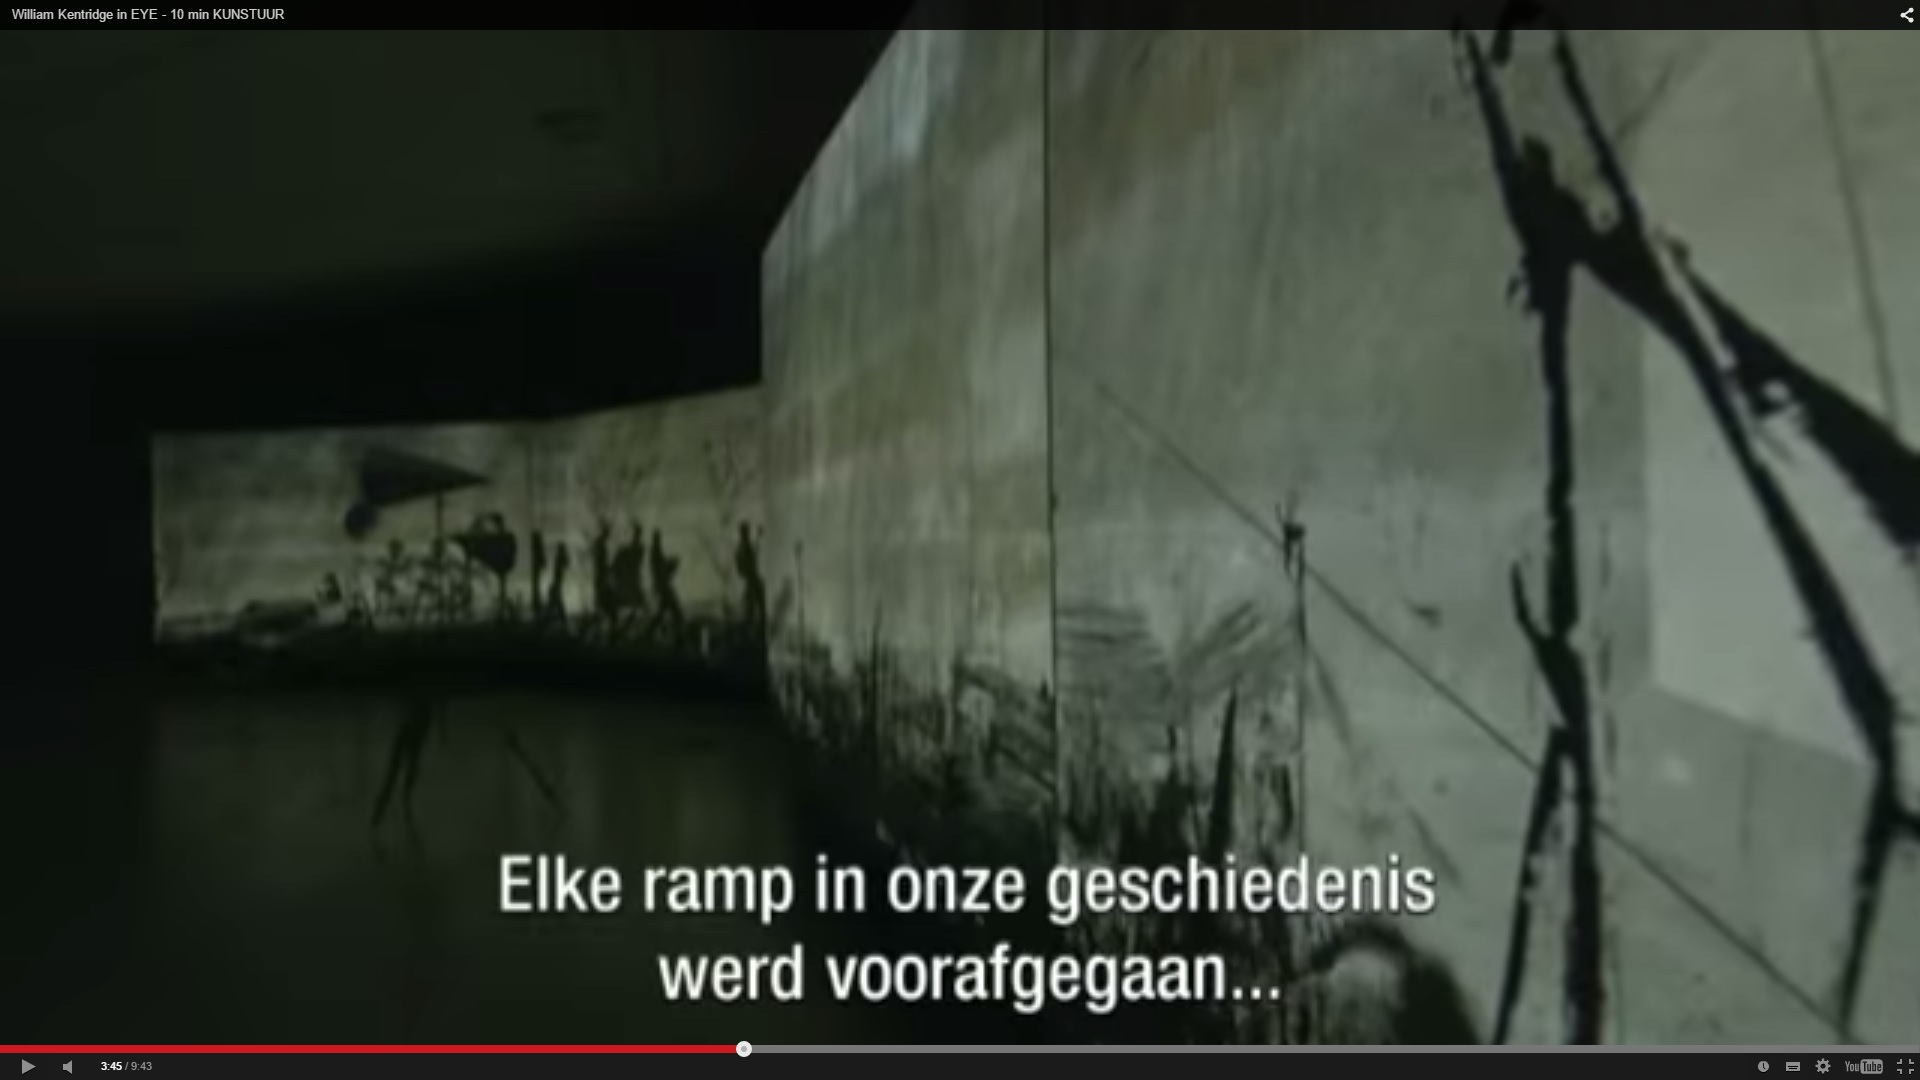 VIROC - William Kentridge